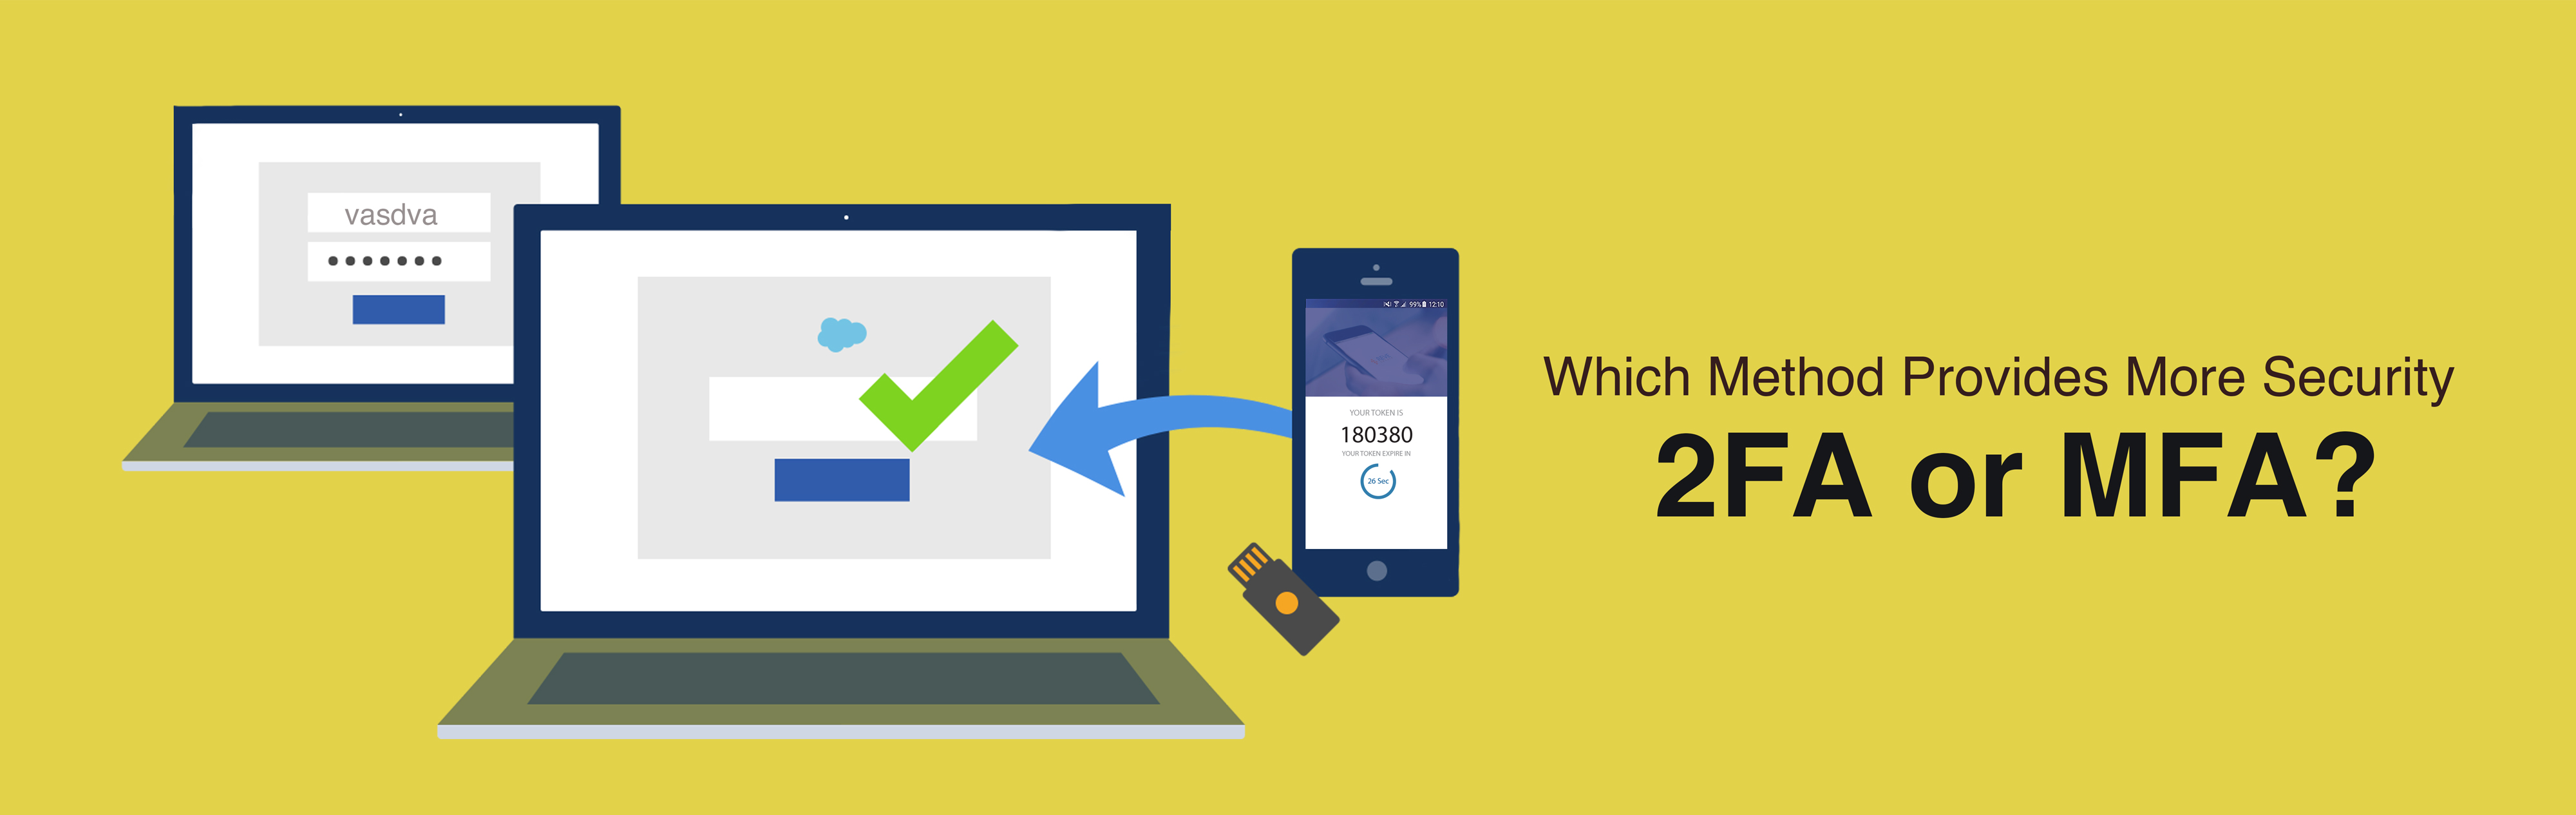 Which Method Provides More Security: 2FA or MFA